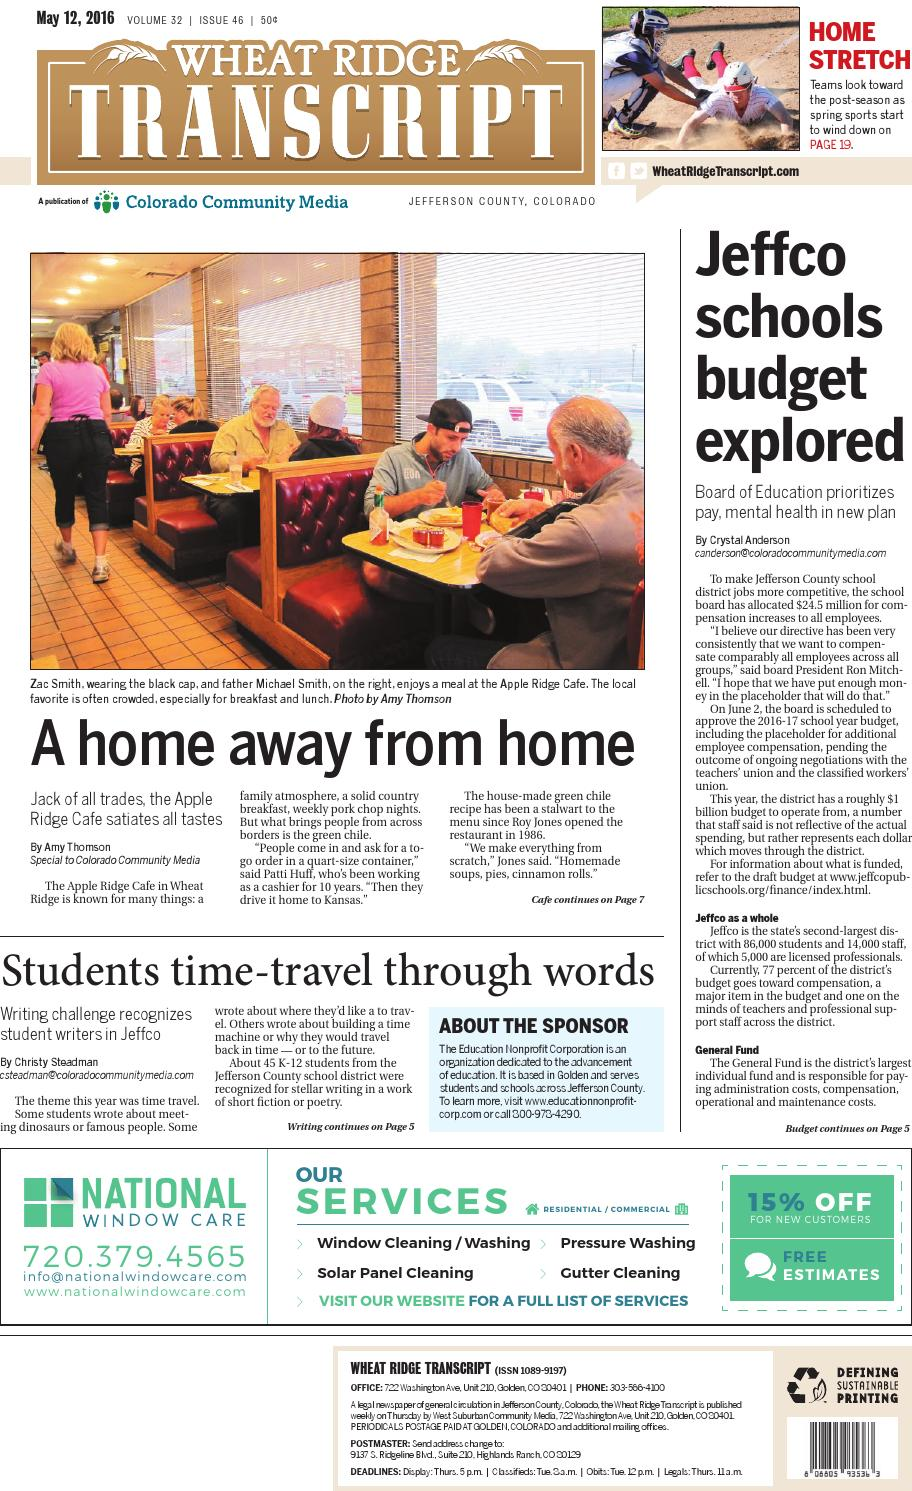 Wheat Ridge Transcript 0512 by Colorado Community Media - issuu